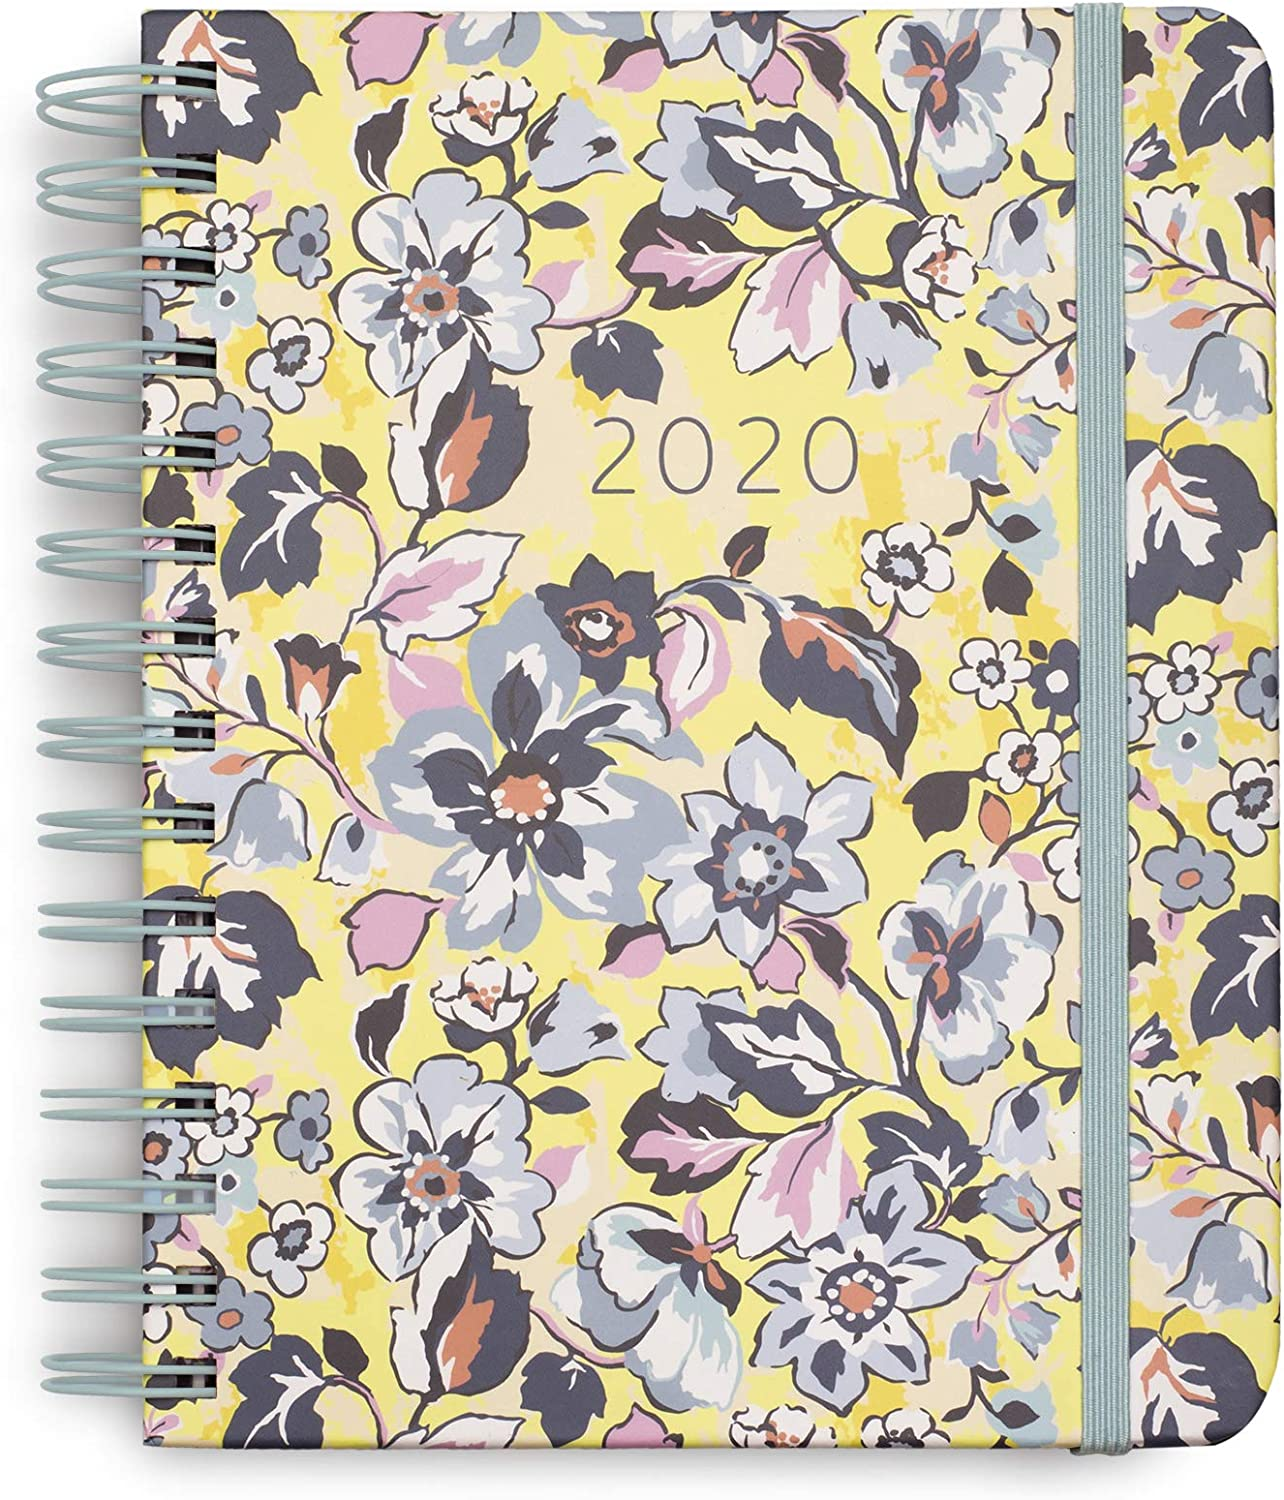 Vera Bradley 2020-2021 Planner Daily Weekly & Monthly, 17 Month Medium Hardcover Personal Planner Dated Aug 2020-Dec 2021 with Stickers, Holidays/Notes Pages, Pocket, Monthly Tabs, Sunny Garden